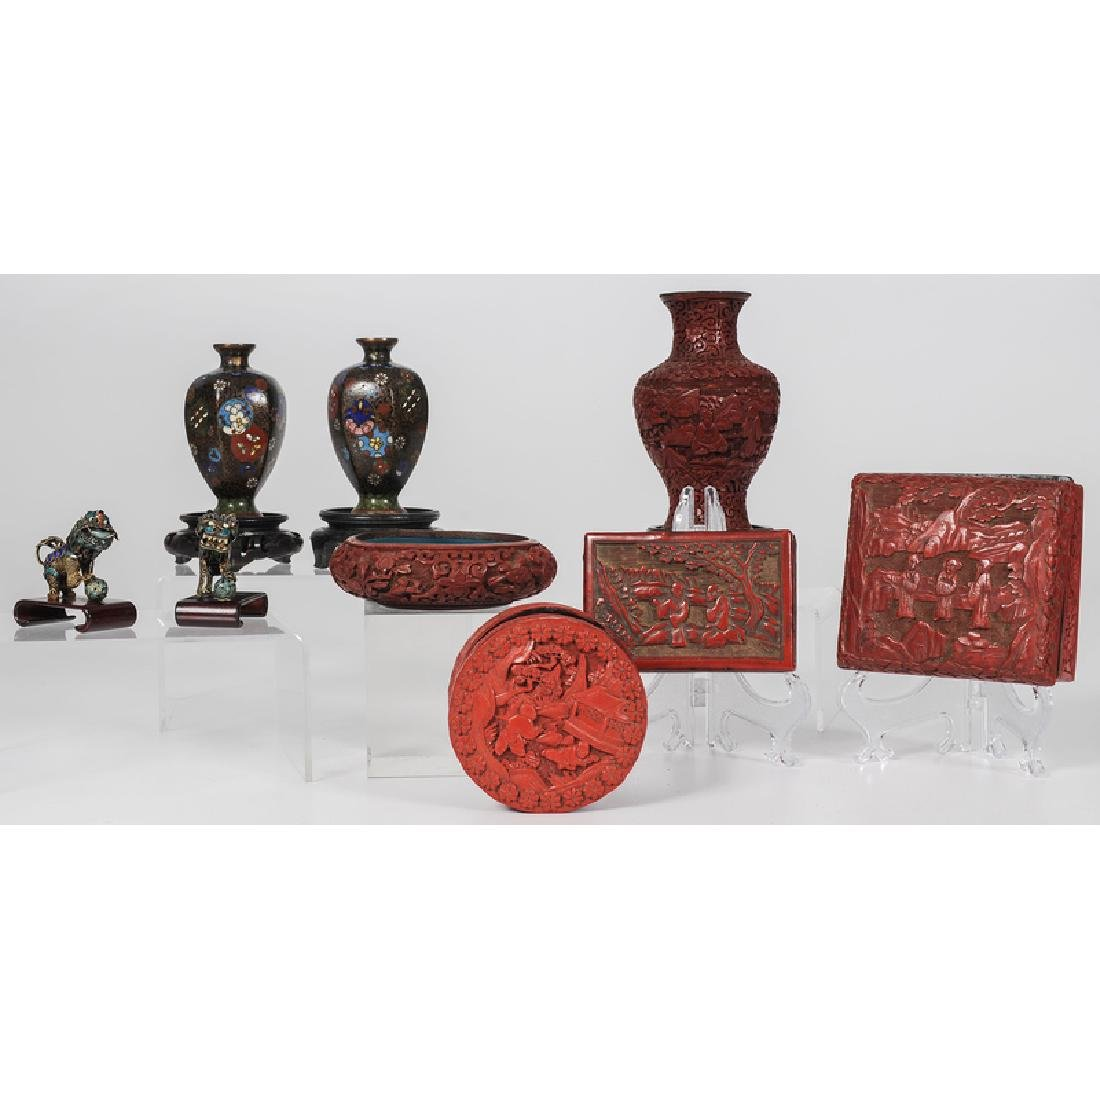 Chinese Assorted Cinnabar and Metalware Vessels and